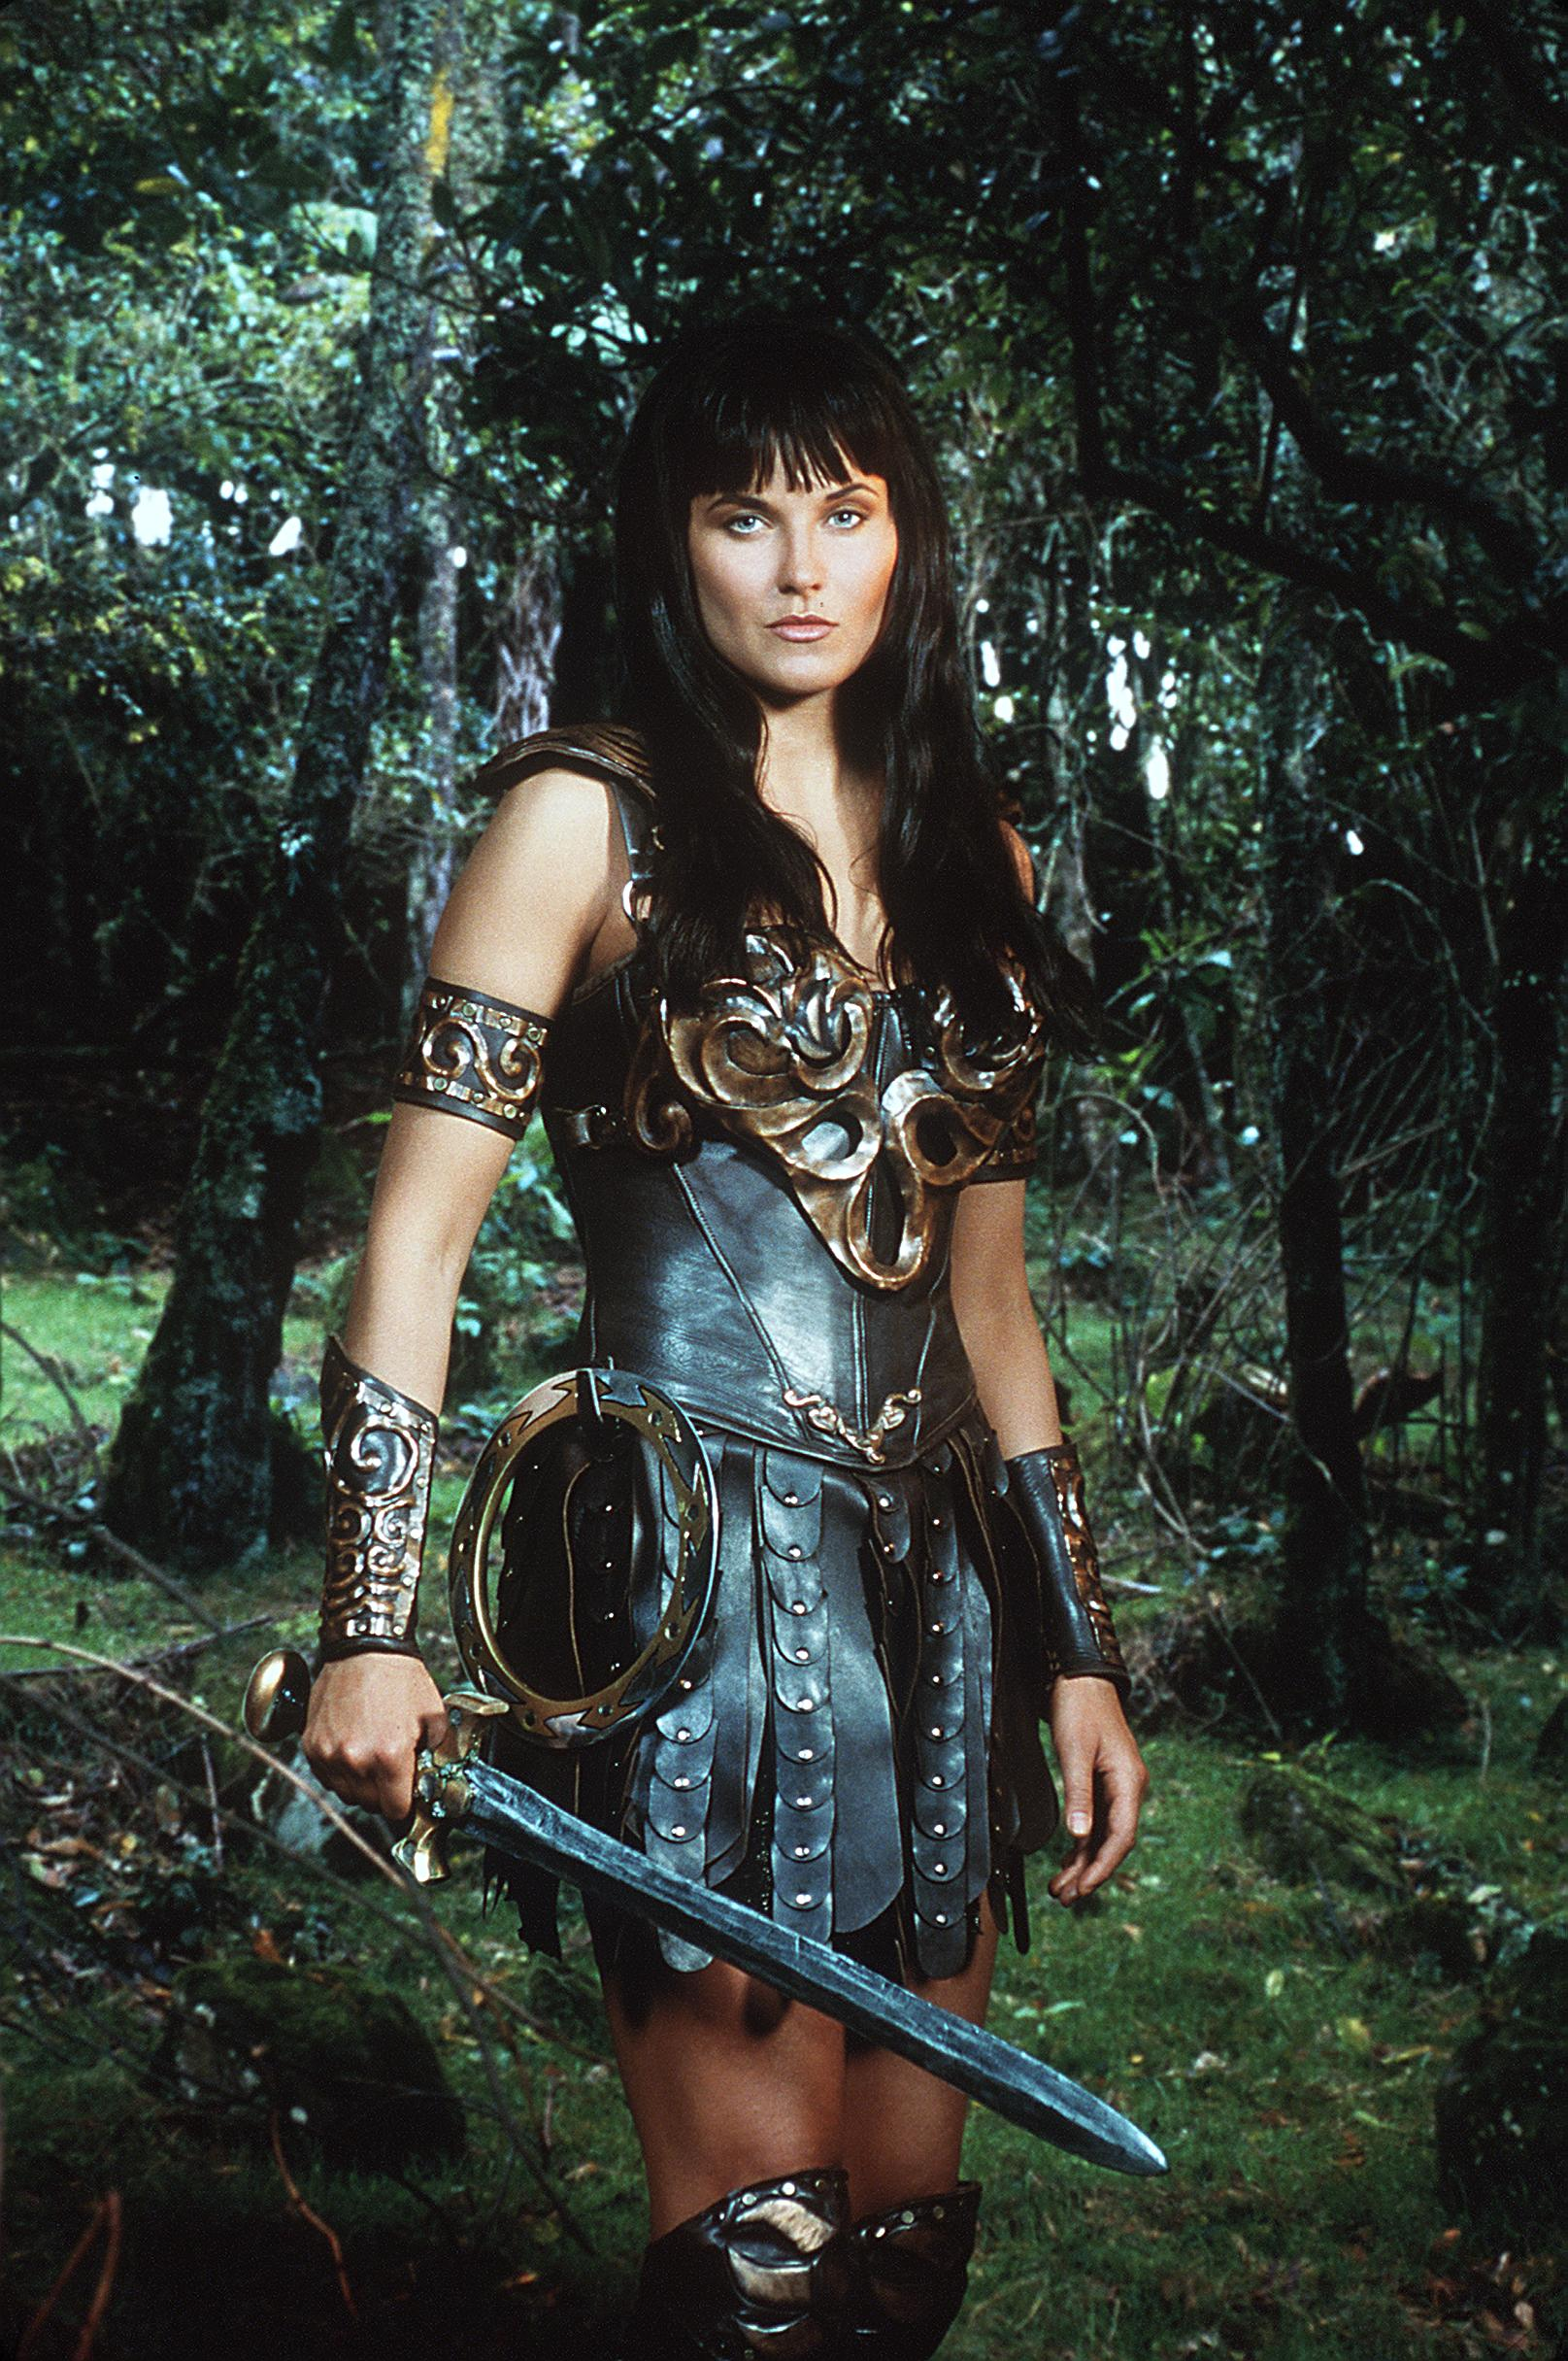 Lucy Lawless Stars In  Xena: Warrior Princess,  1999